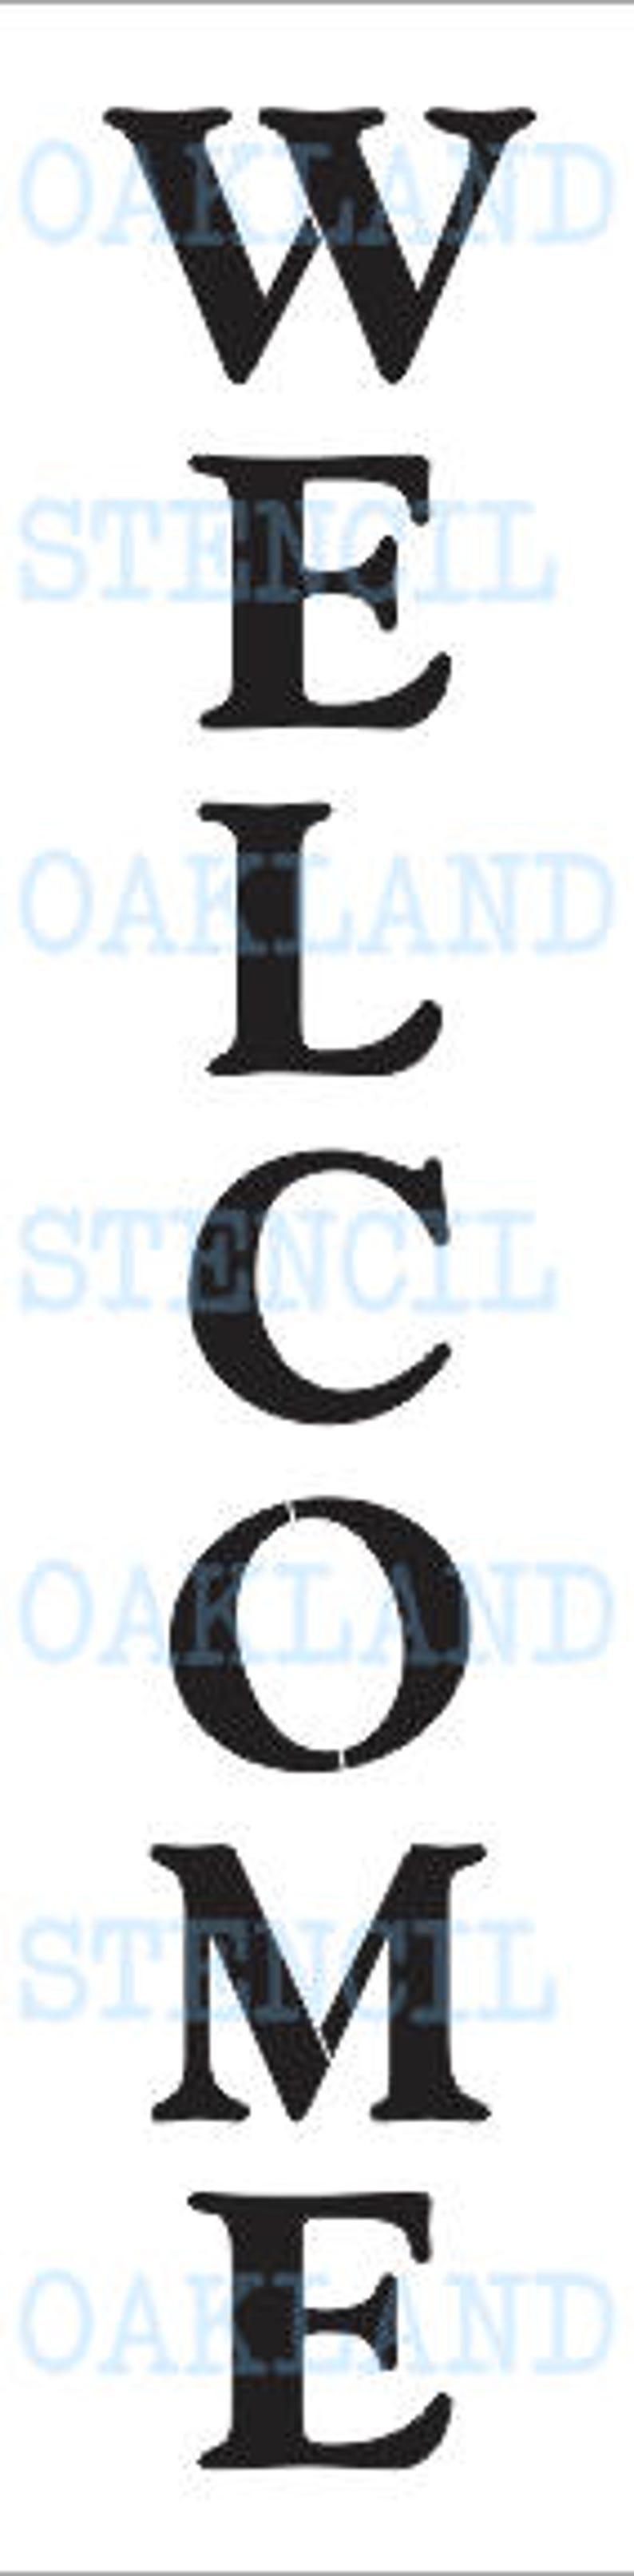 WELCOME STENCIL Vertical for Painting Porch Signs Entryway image 0